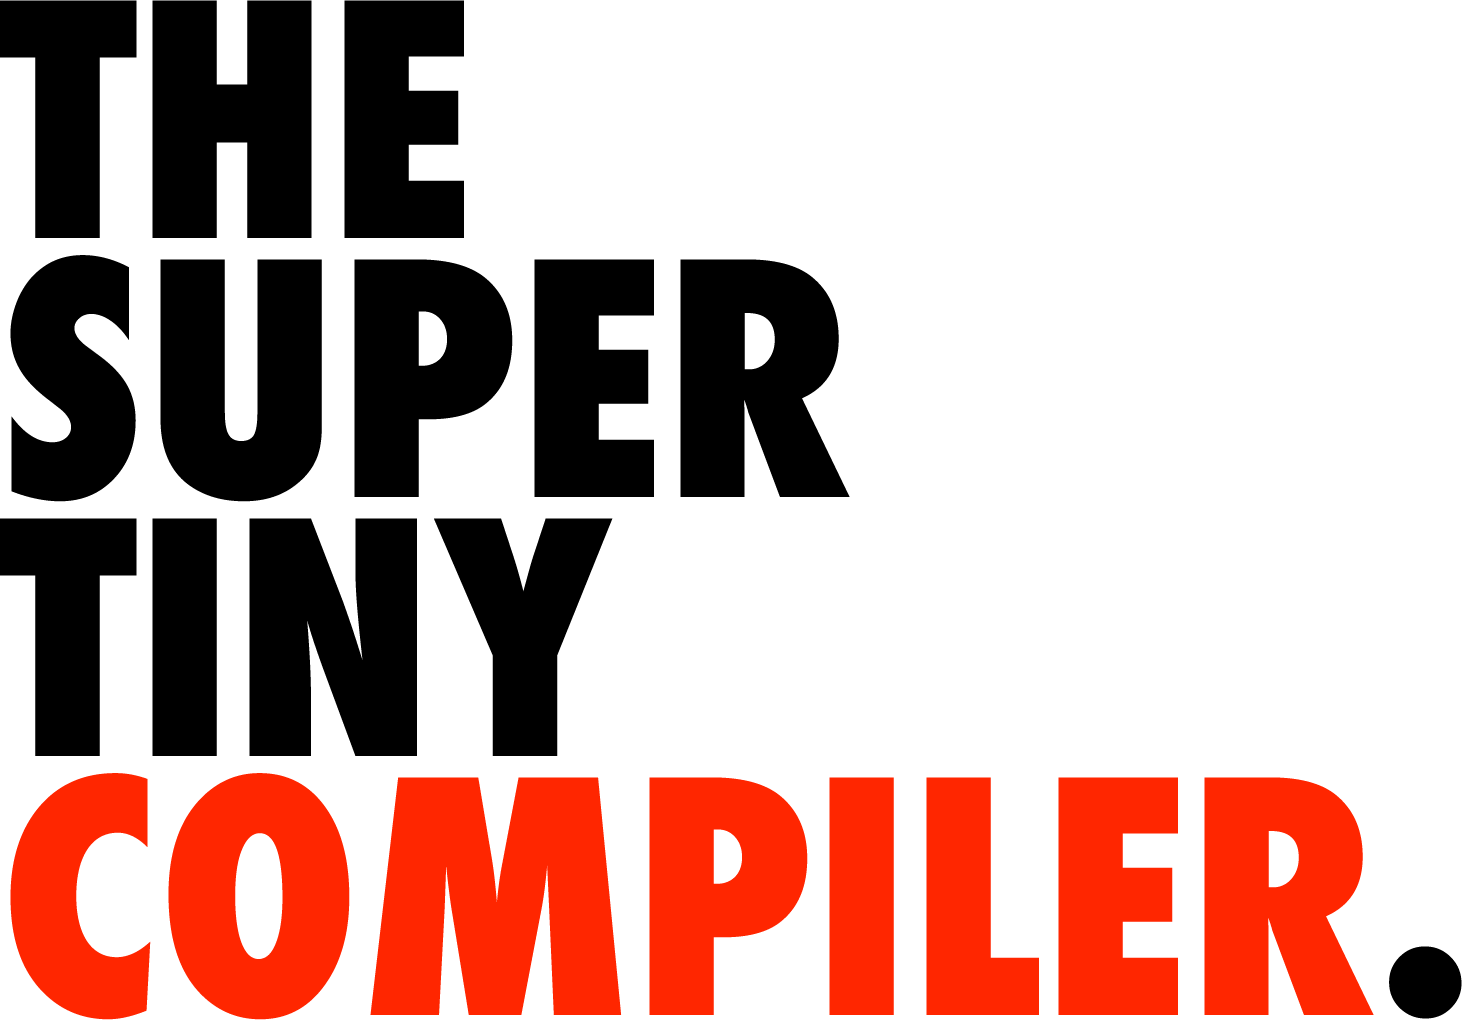 THE SUPER TINY COMPILER